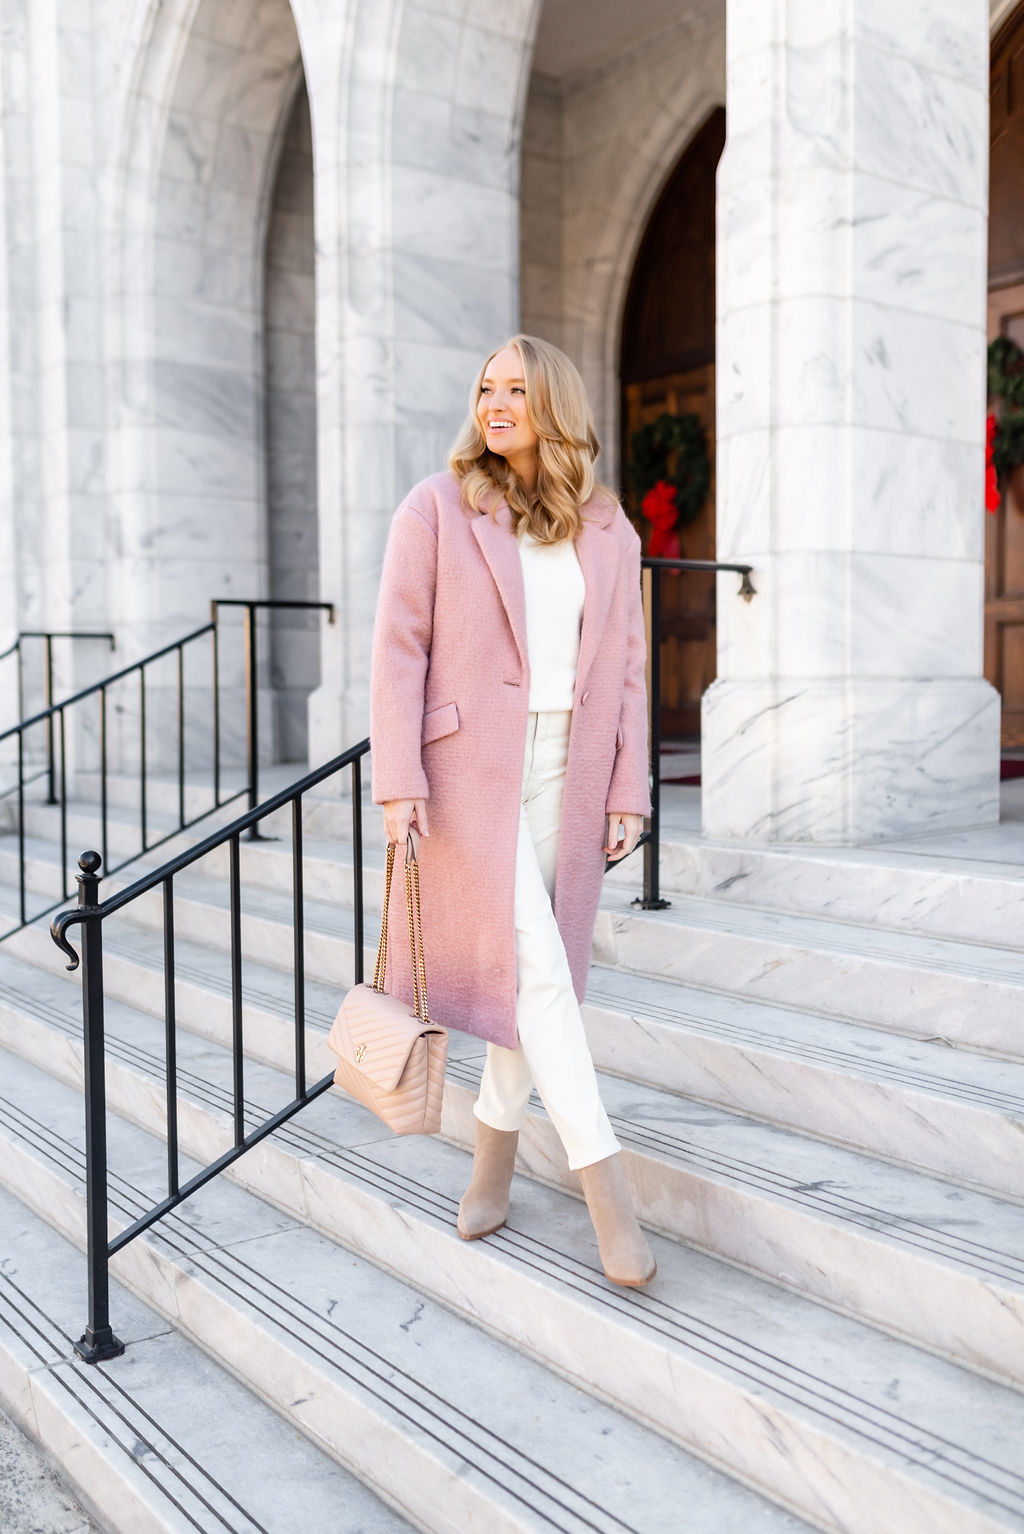 Winter wardrobe pieces from Express